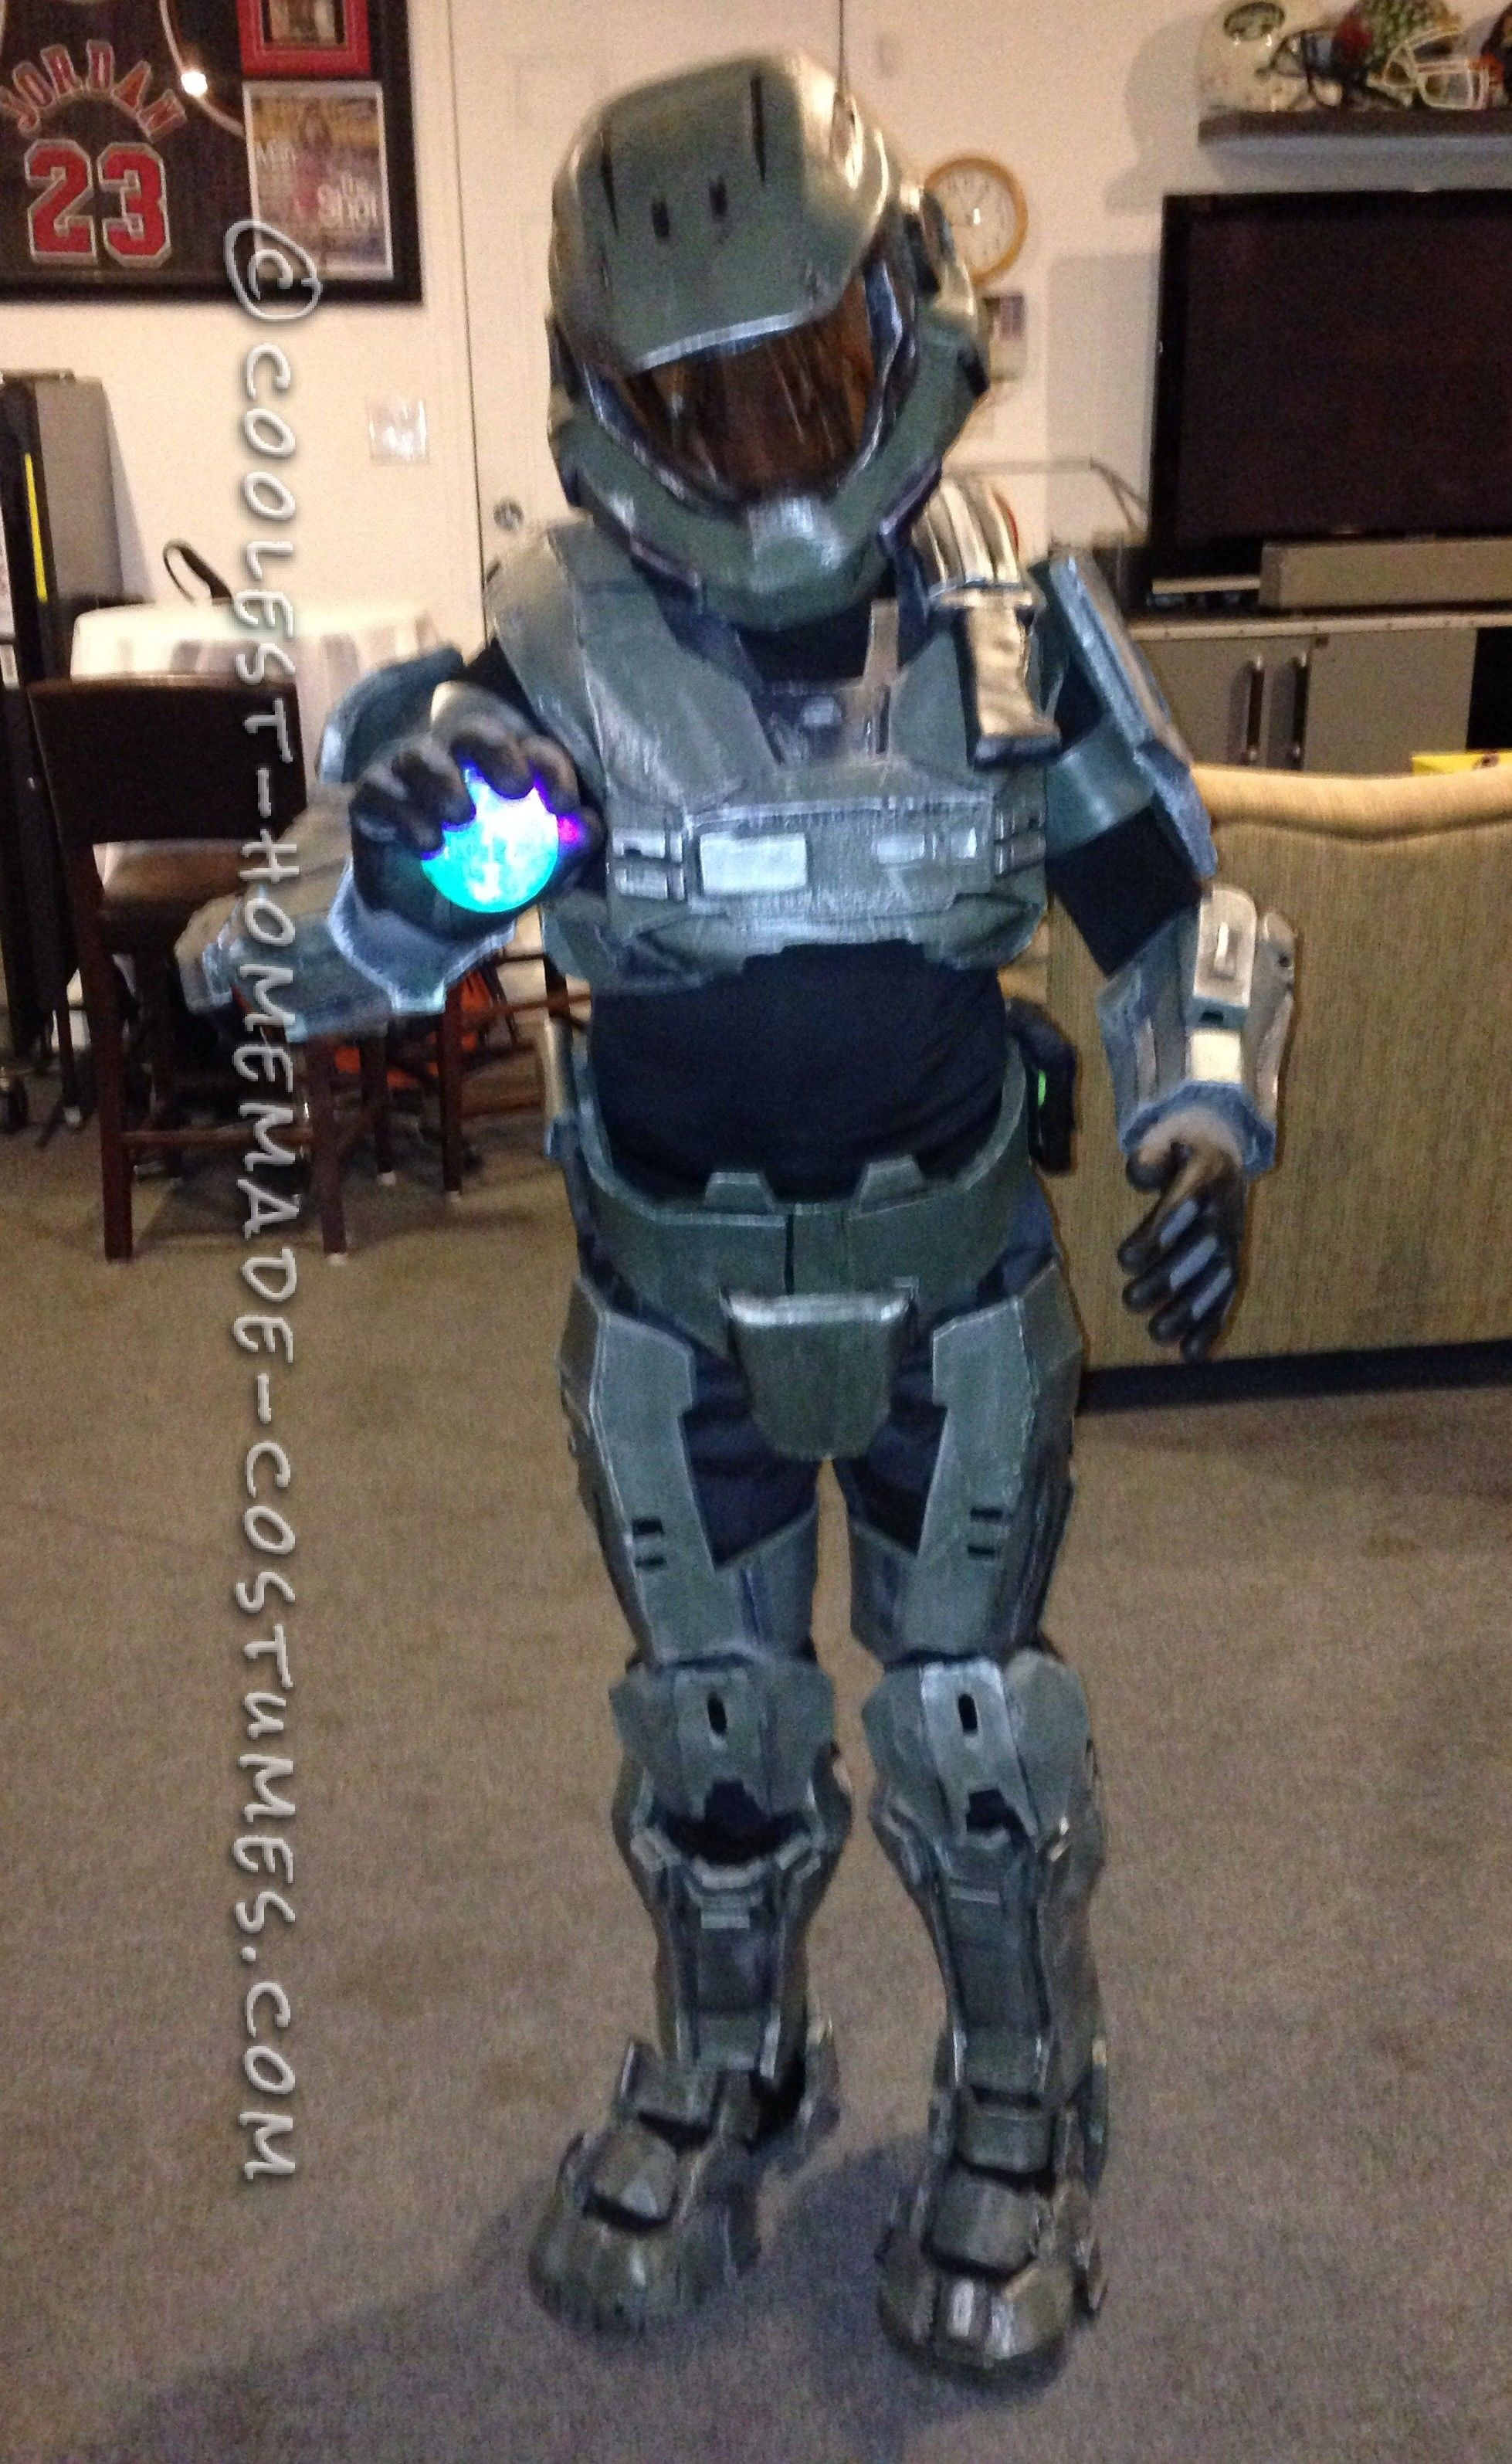 Halo Costume - The First Ever Costume I Built & Halo Costume - The First Ever Costume I Built | Halloween costume ...